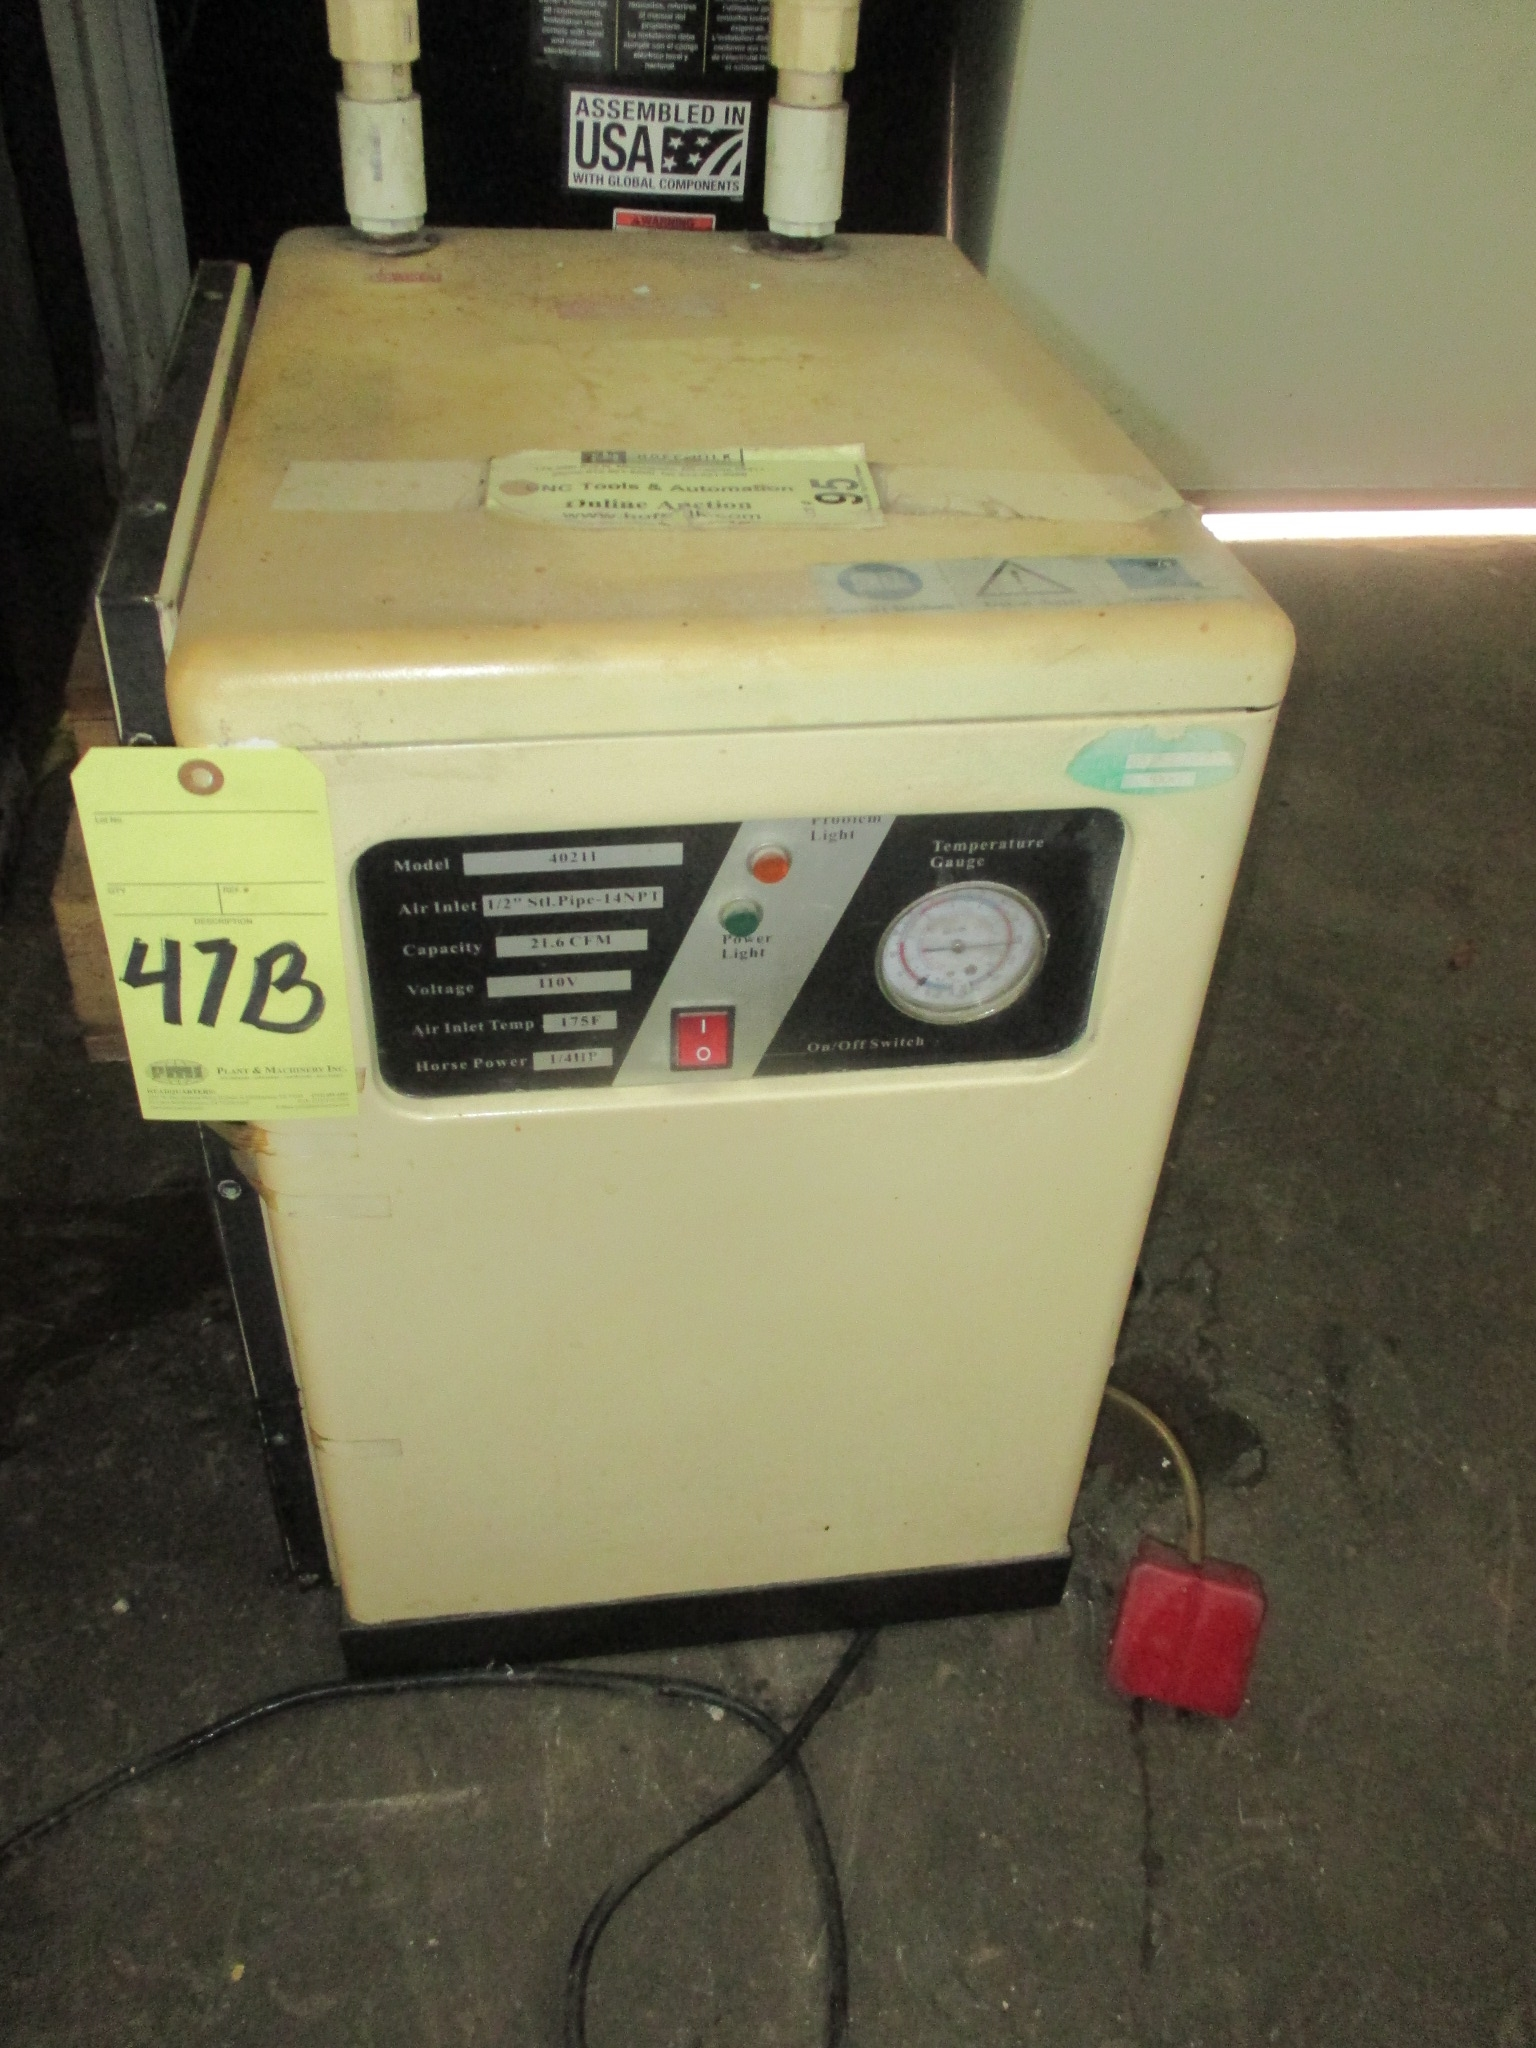 Lot 47B - AIR DRYER